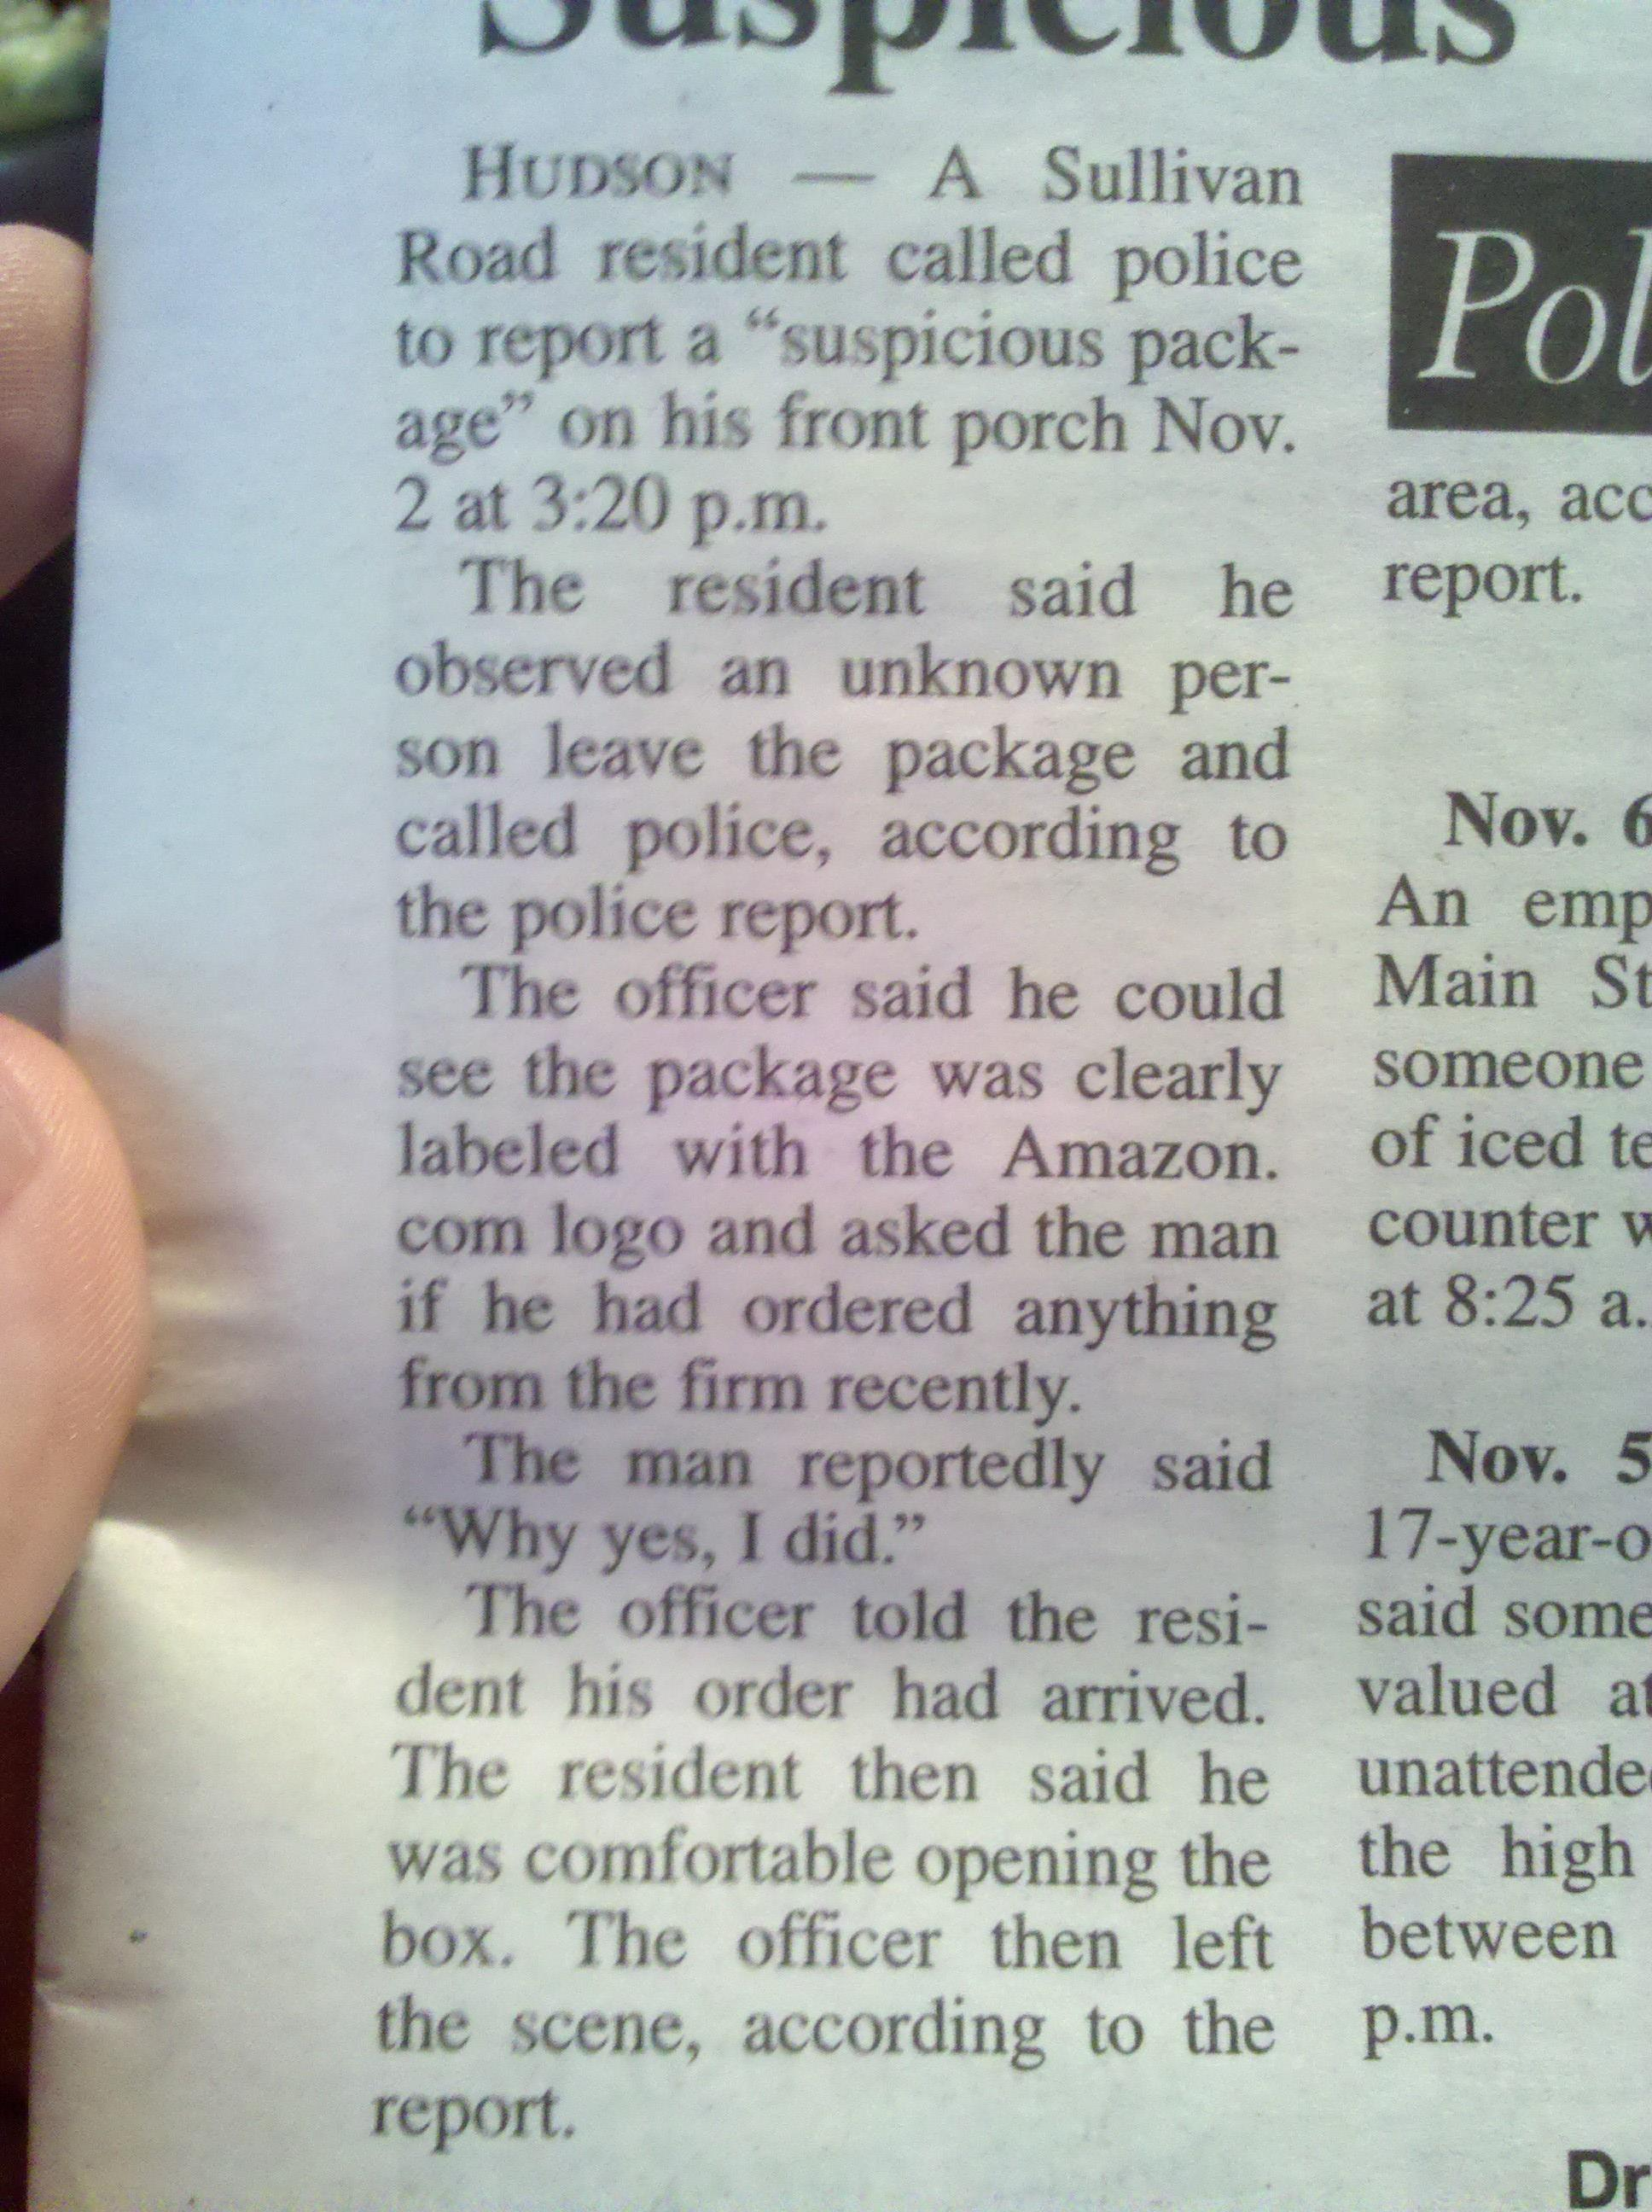 Unknown man leaves suspicious package